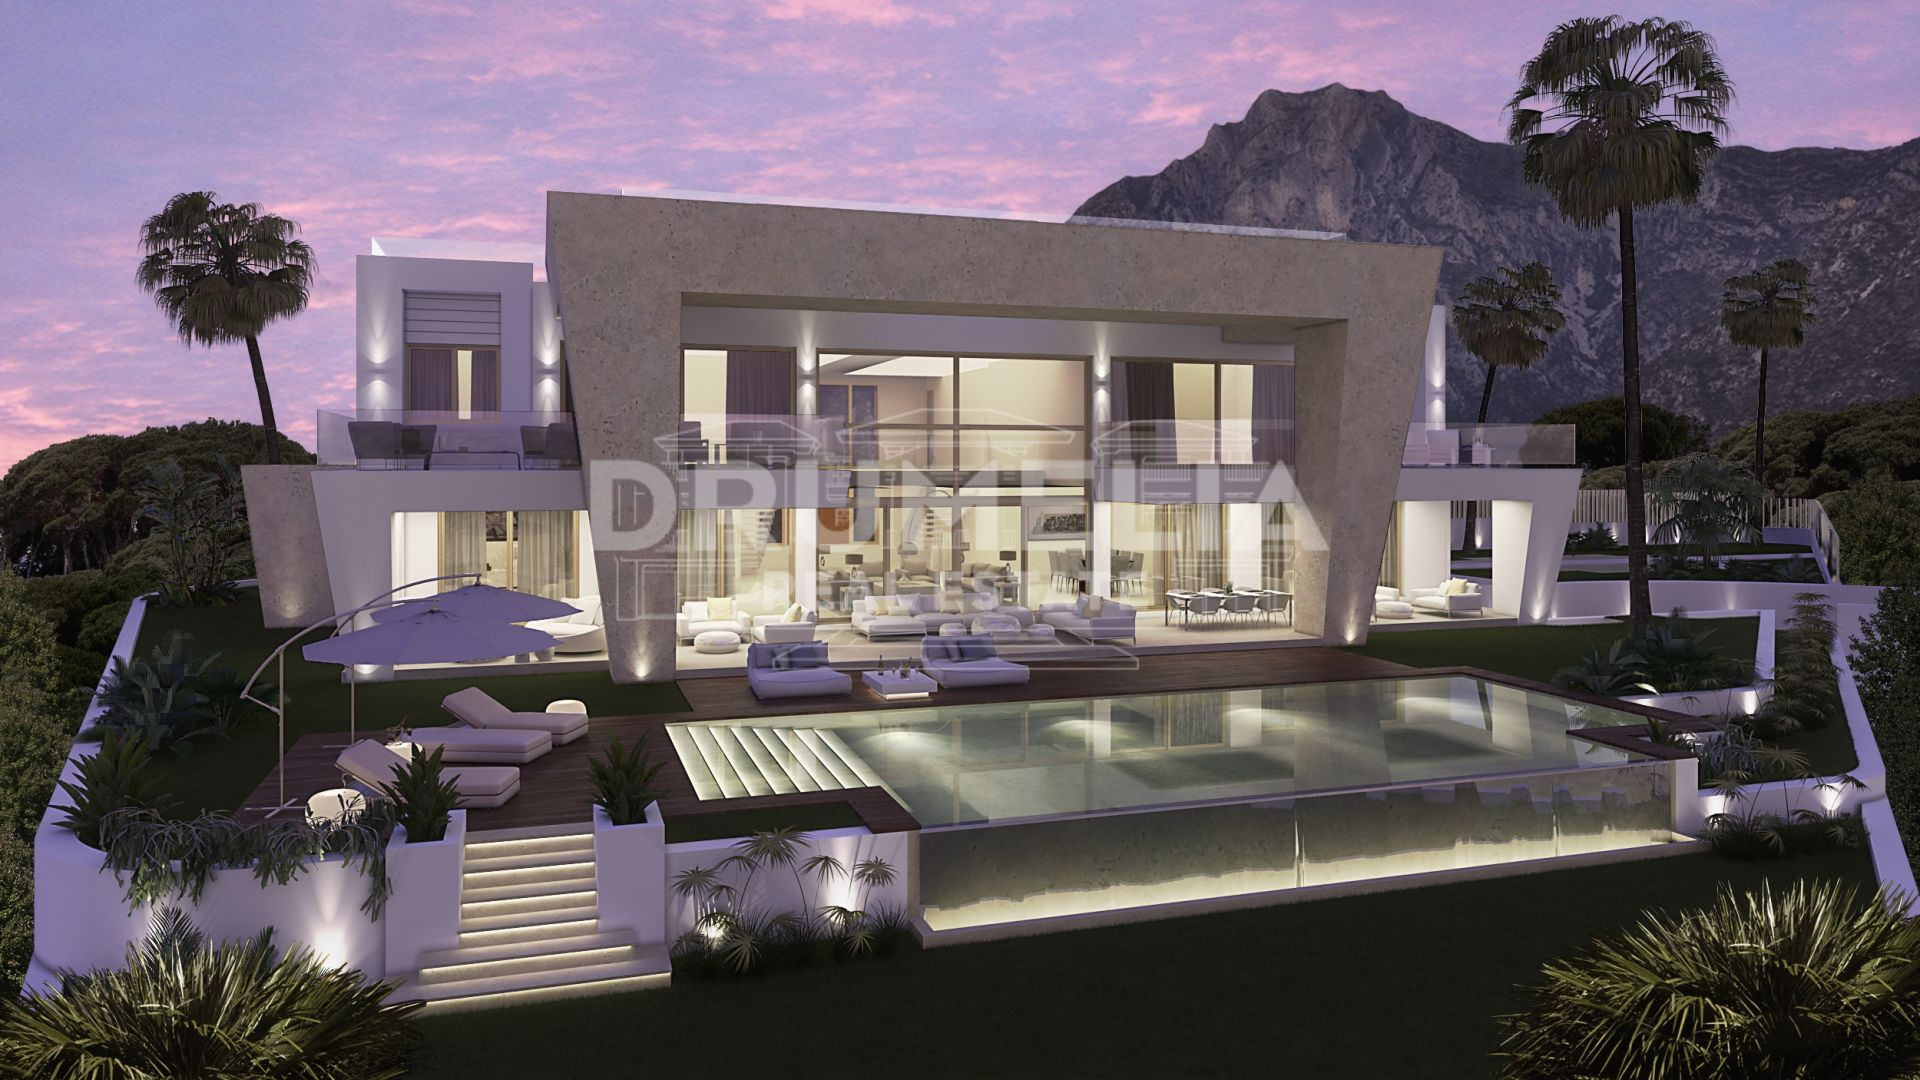 Villa in sierra blanca marbella golden mile